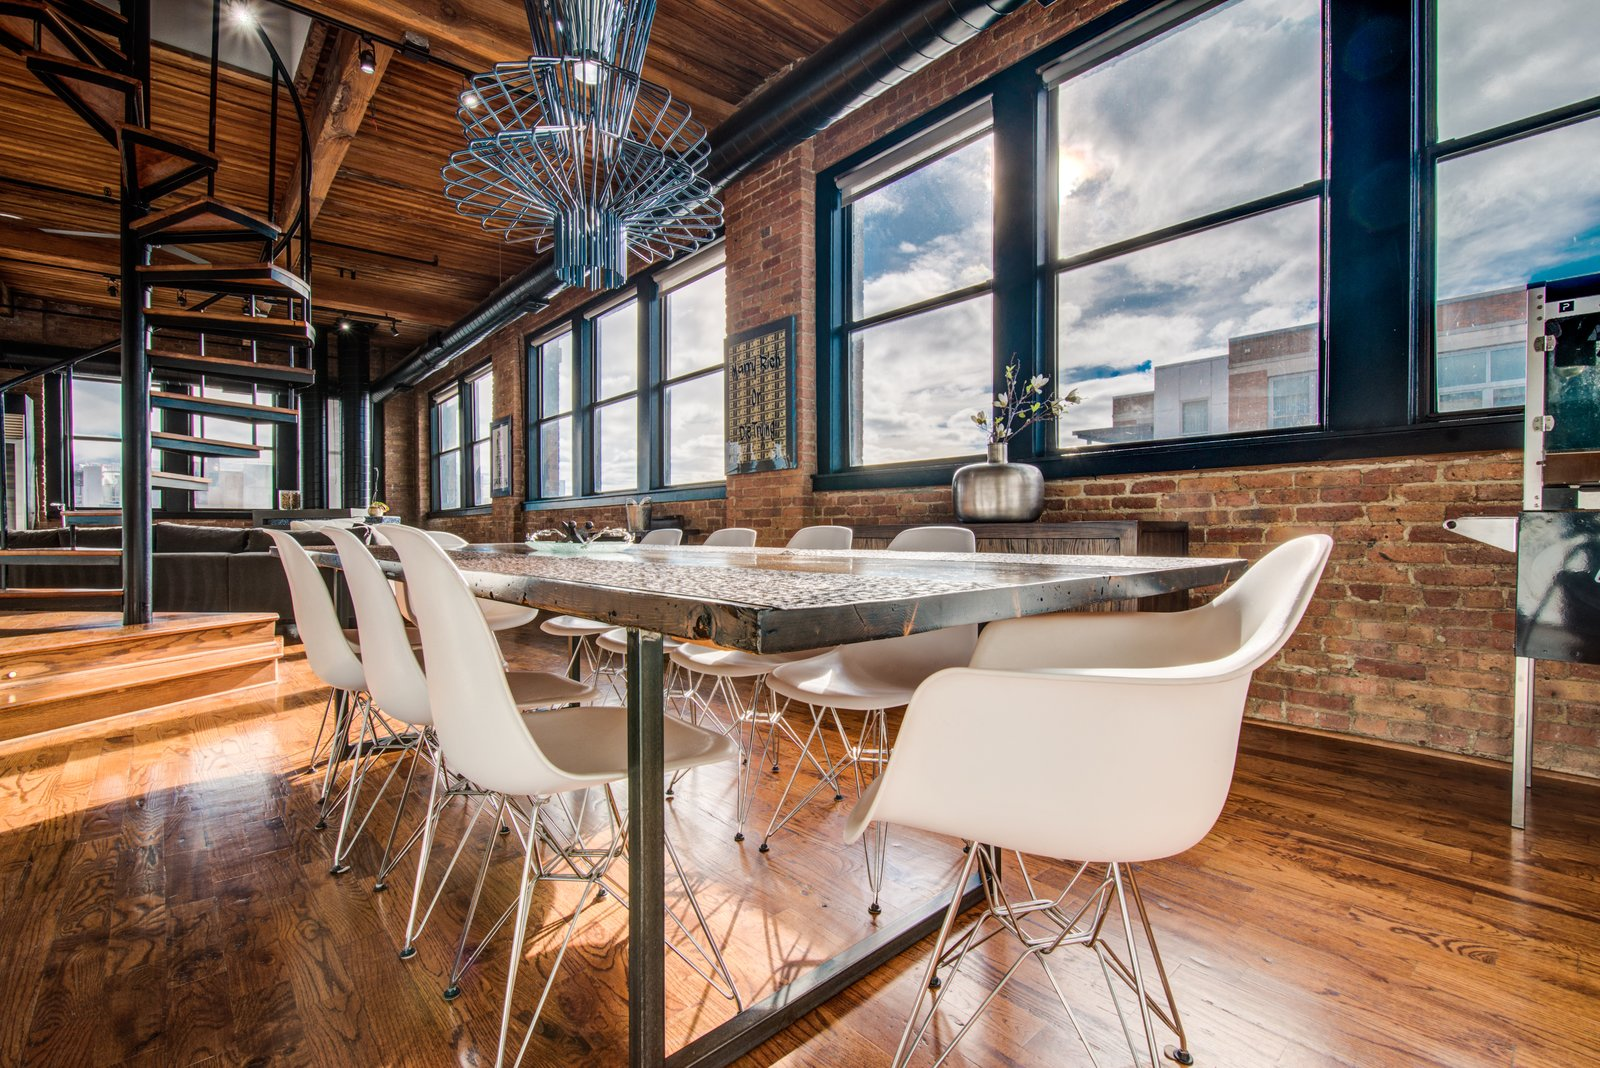 Dining Room, Track Lighting, Medium Hardwood Floor, Chair, Ceiling Lighting, and Table  Penthouse That Starred on NBC's 'Chicago Fire' Asks $1.775M